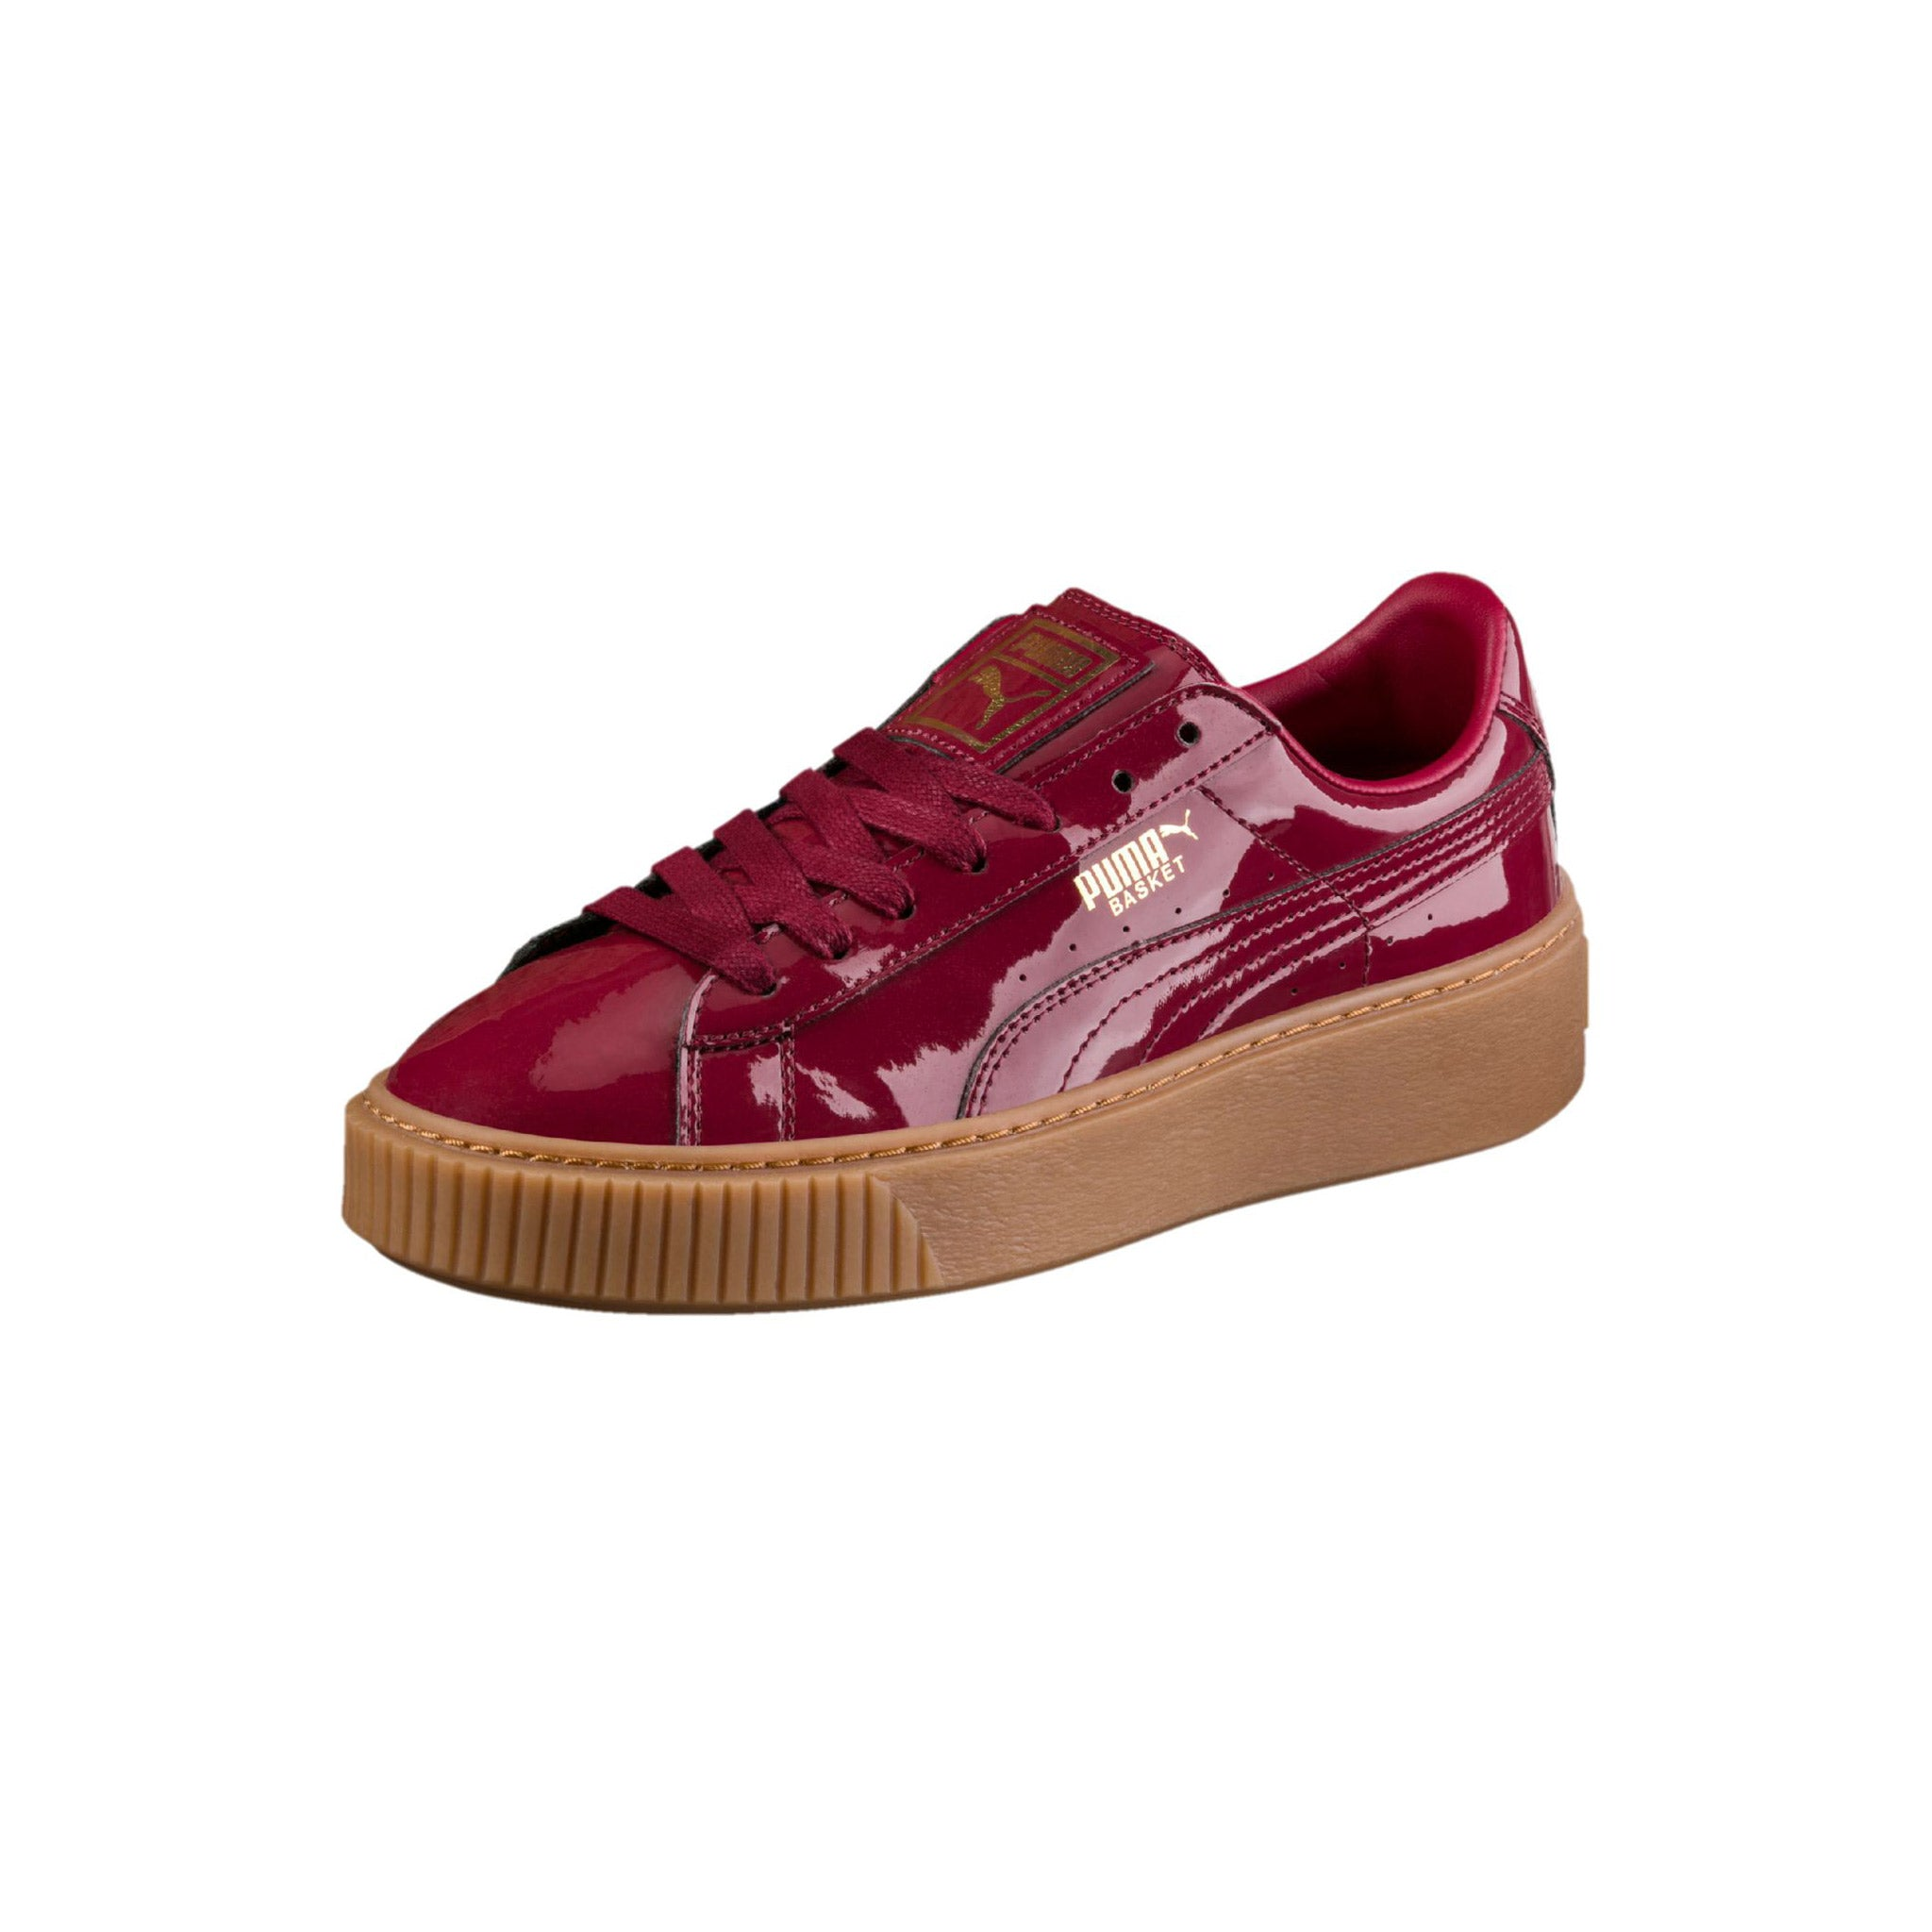 Puma Basket Platform Patent Red Sneakers Angled